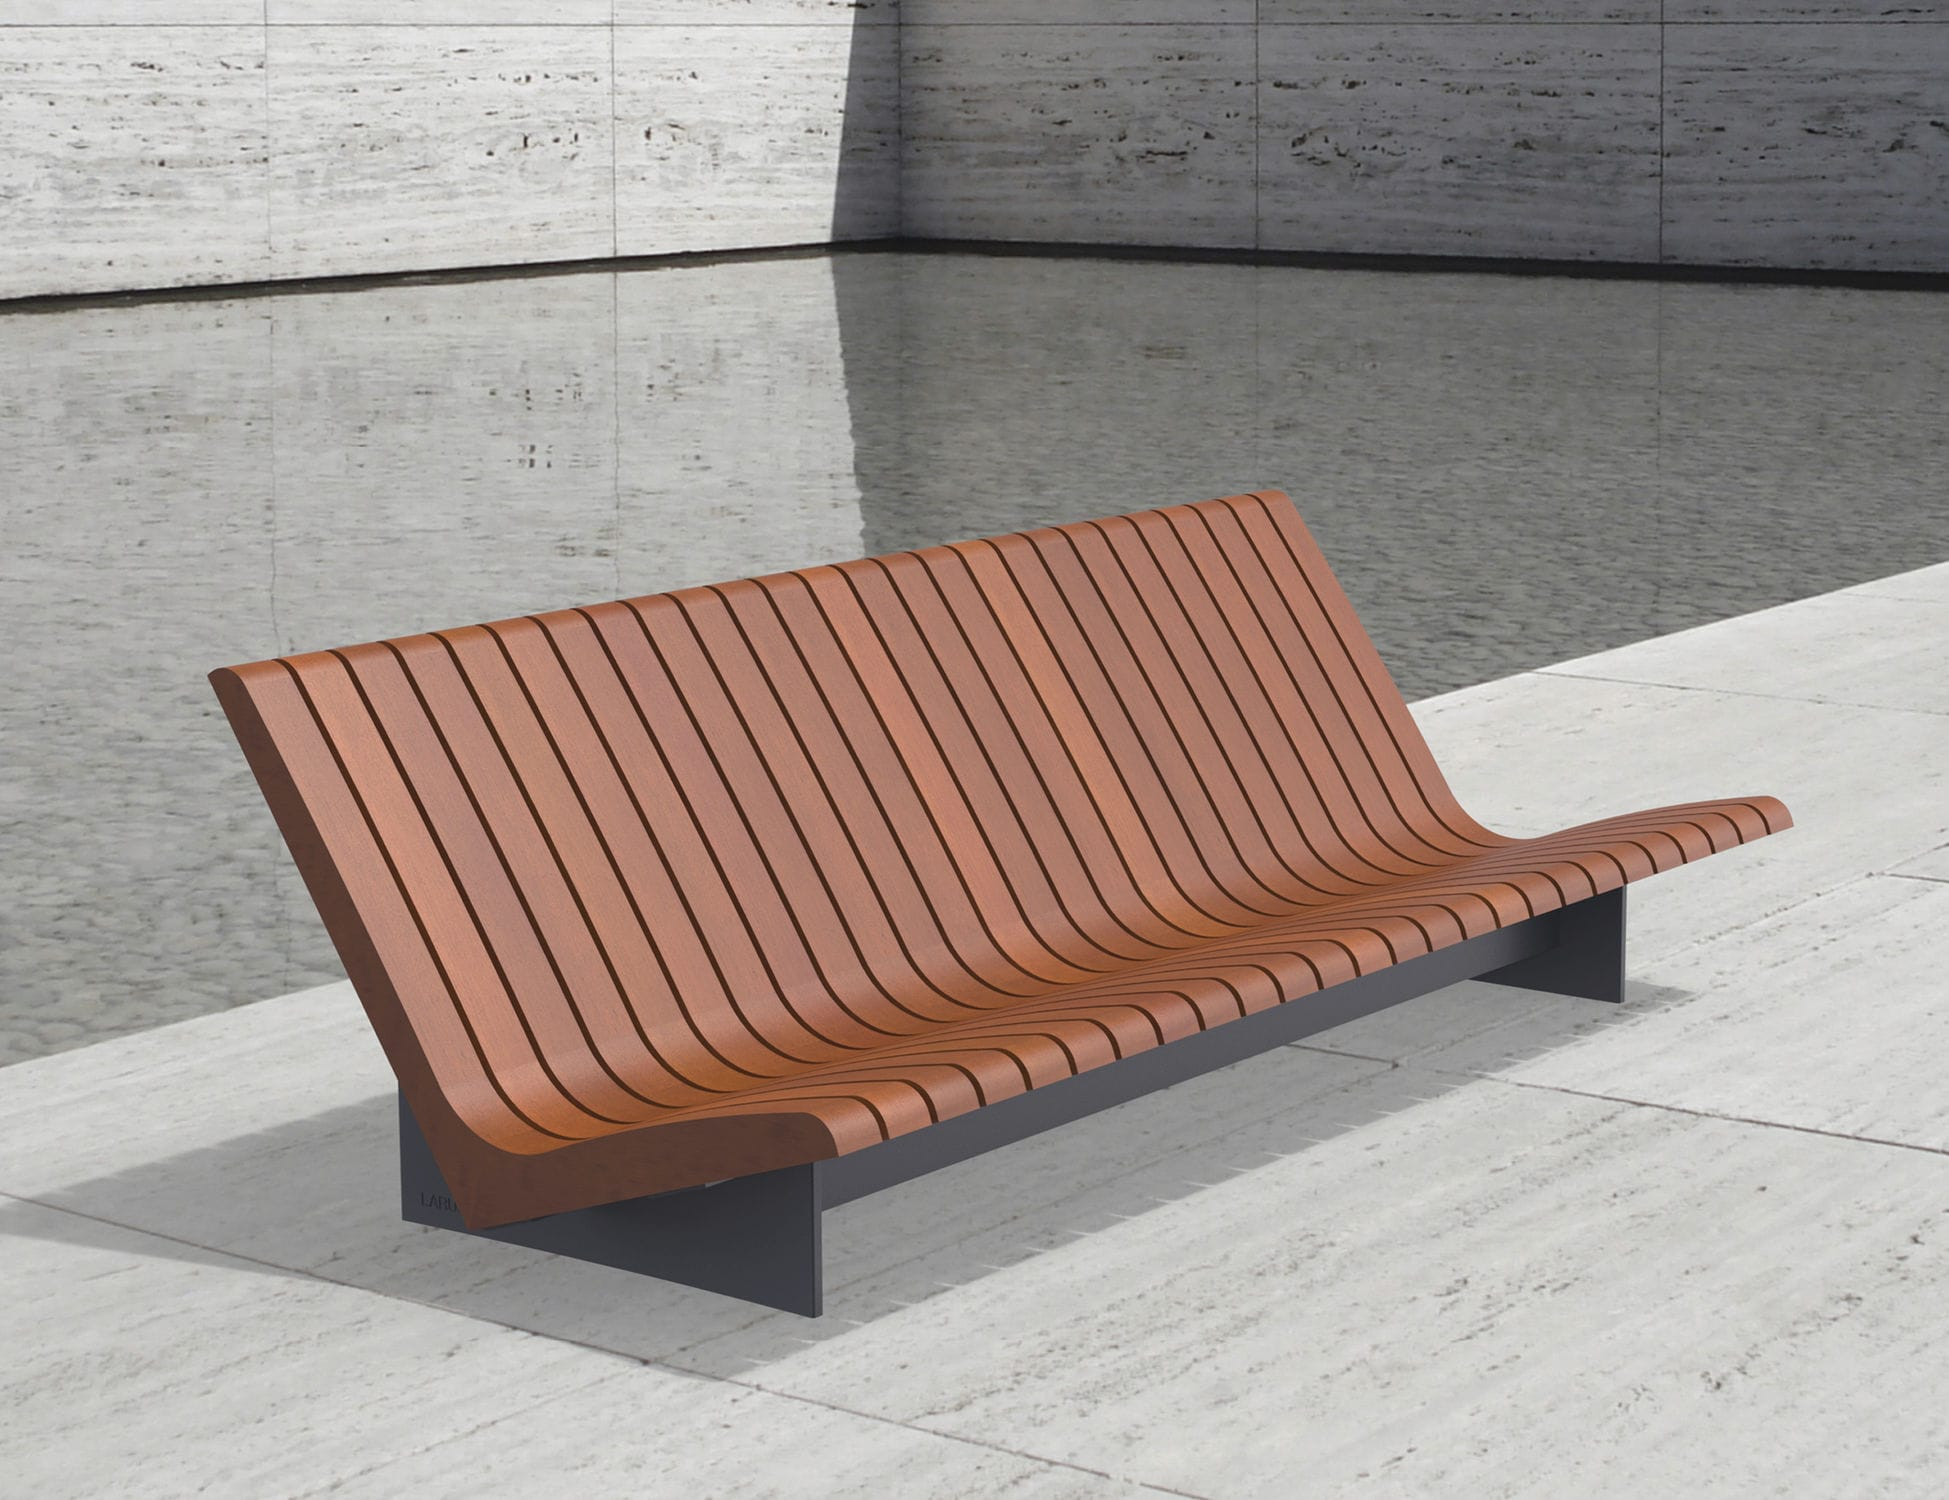 Garden bench / public / contemporary / wooden - ARIA